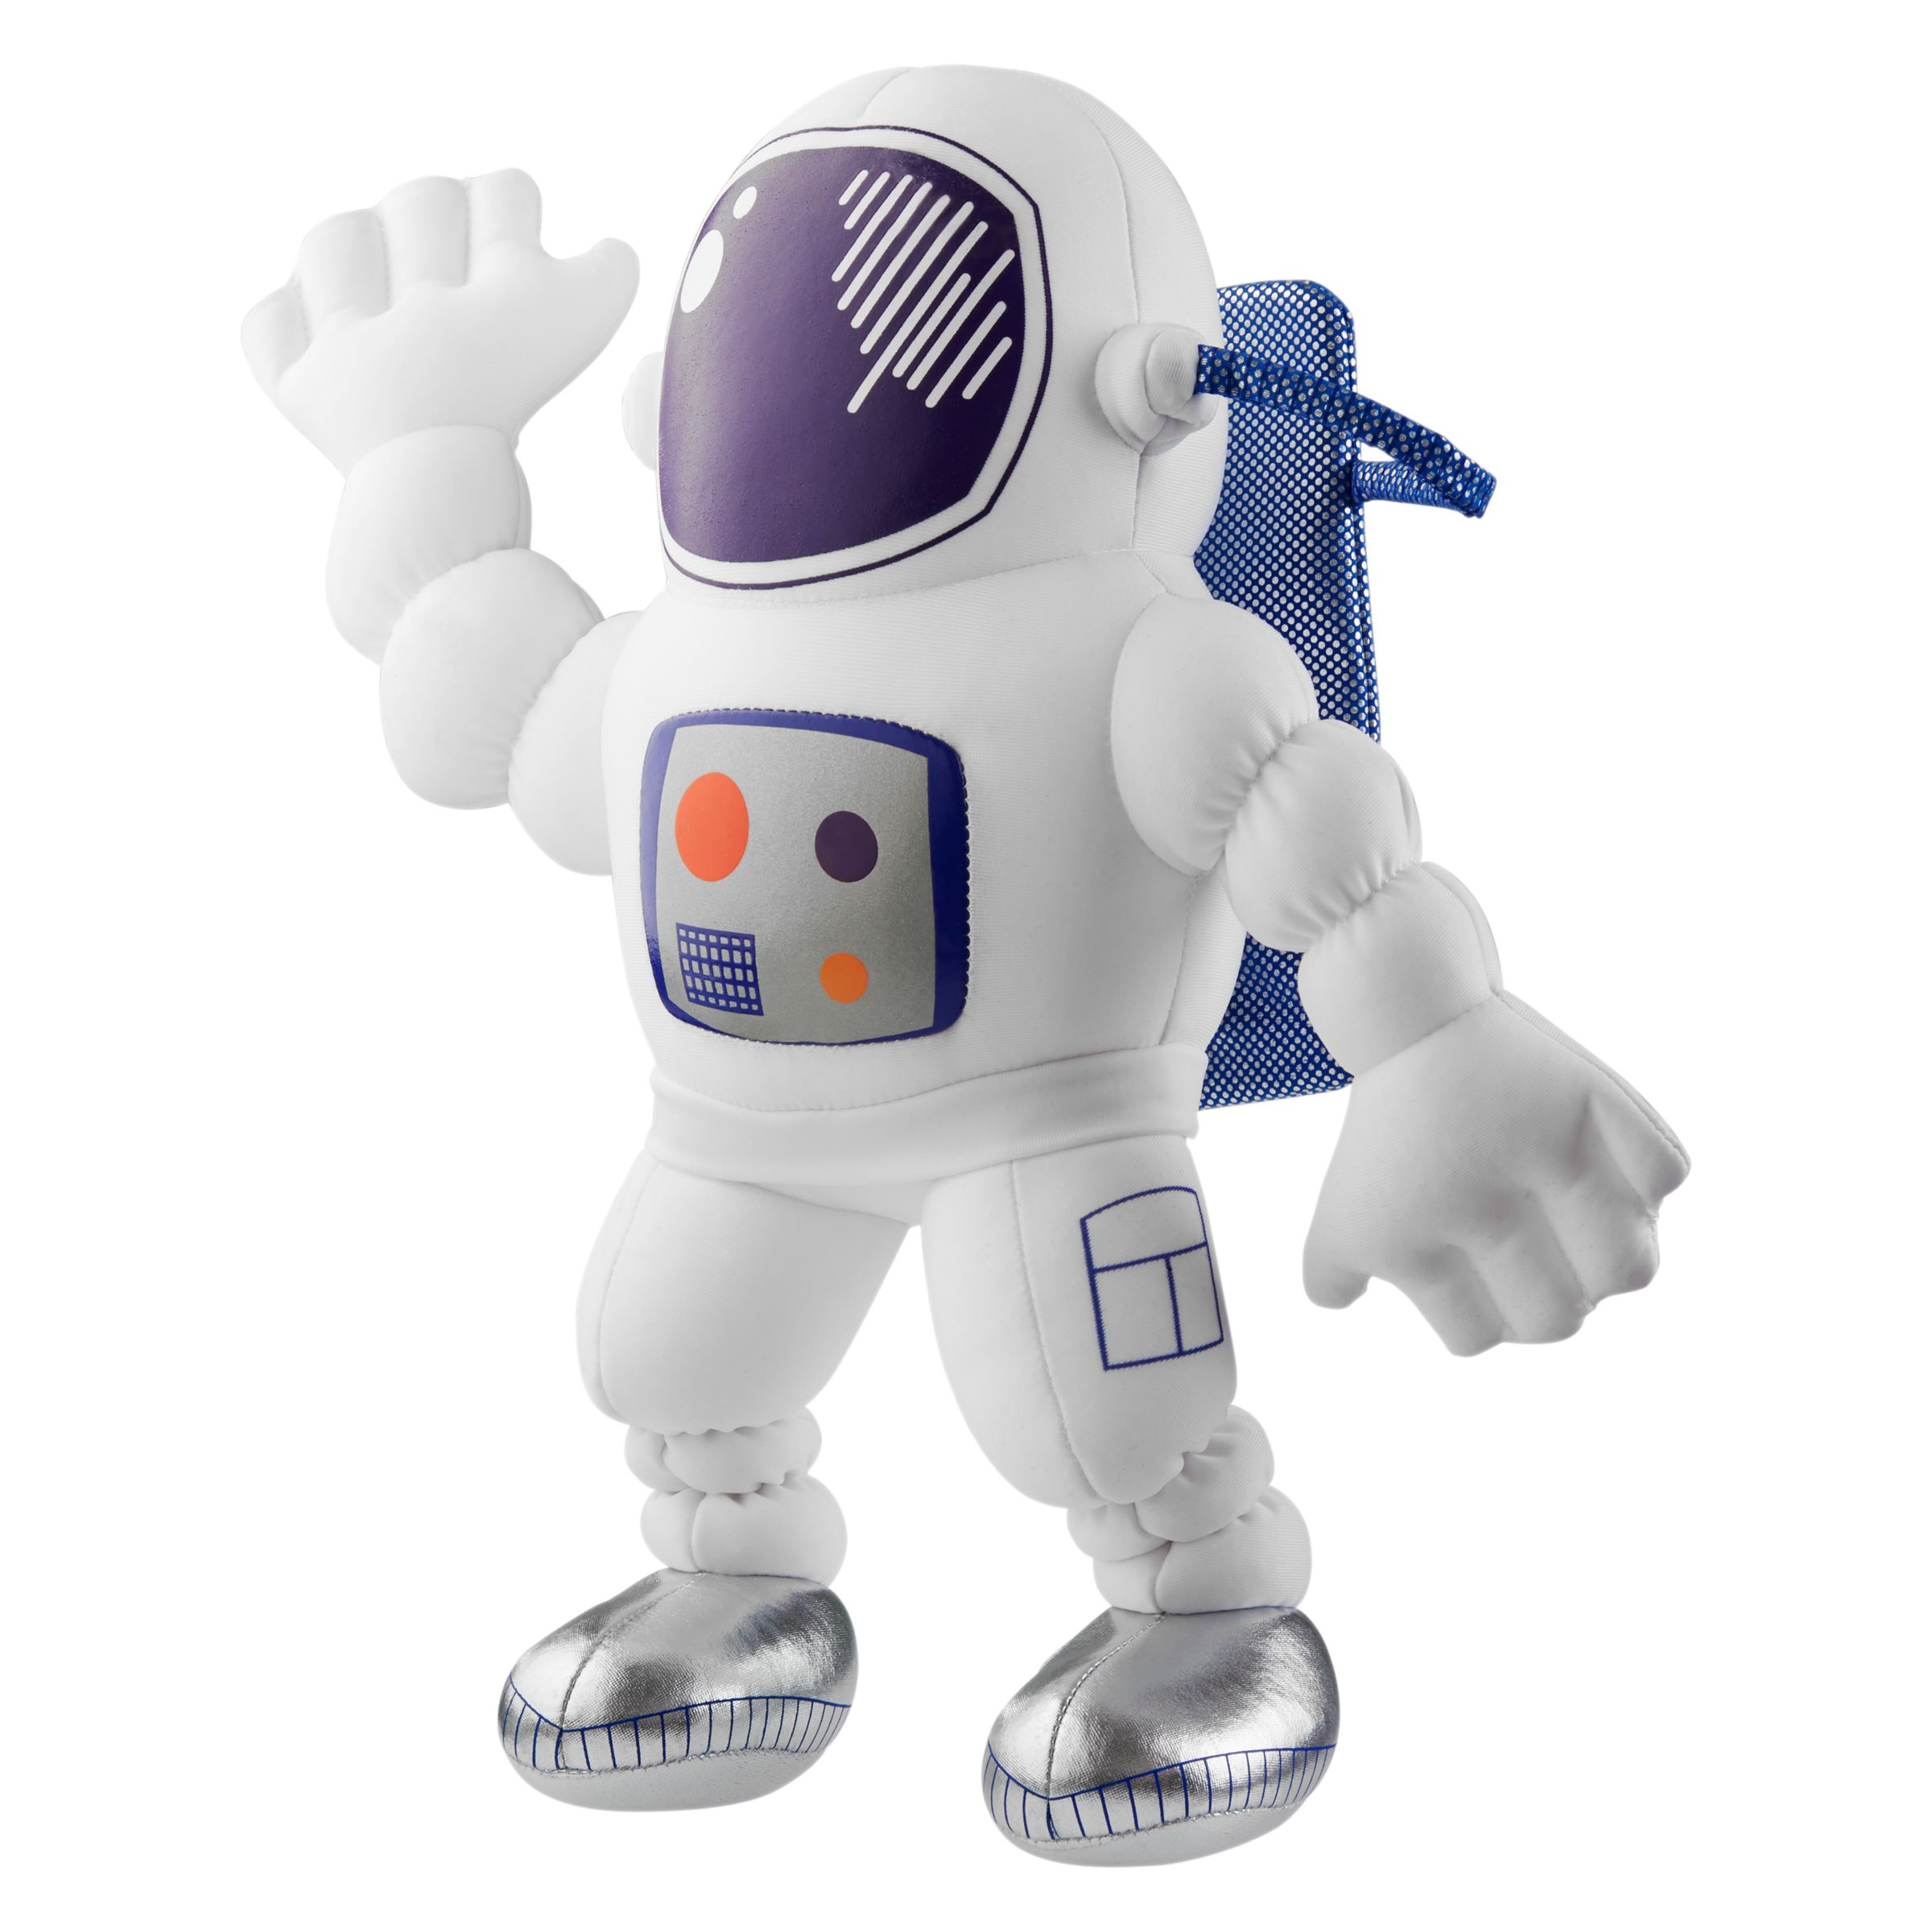 little home at John Lewis little home at John Lewis 3D Spaceman Toy